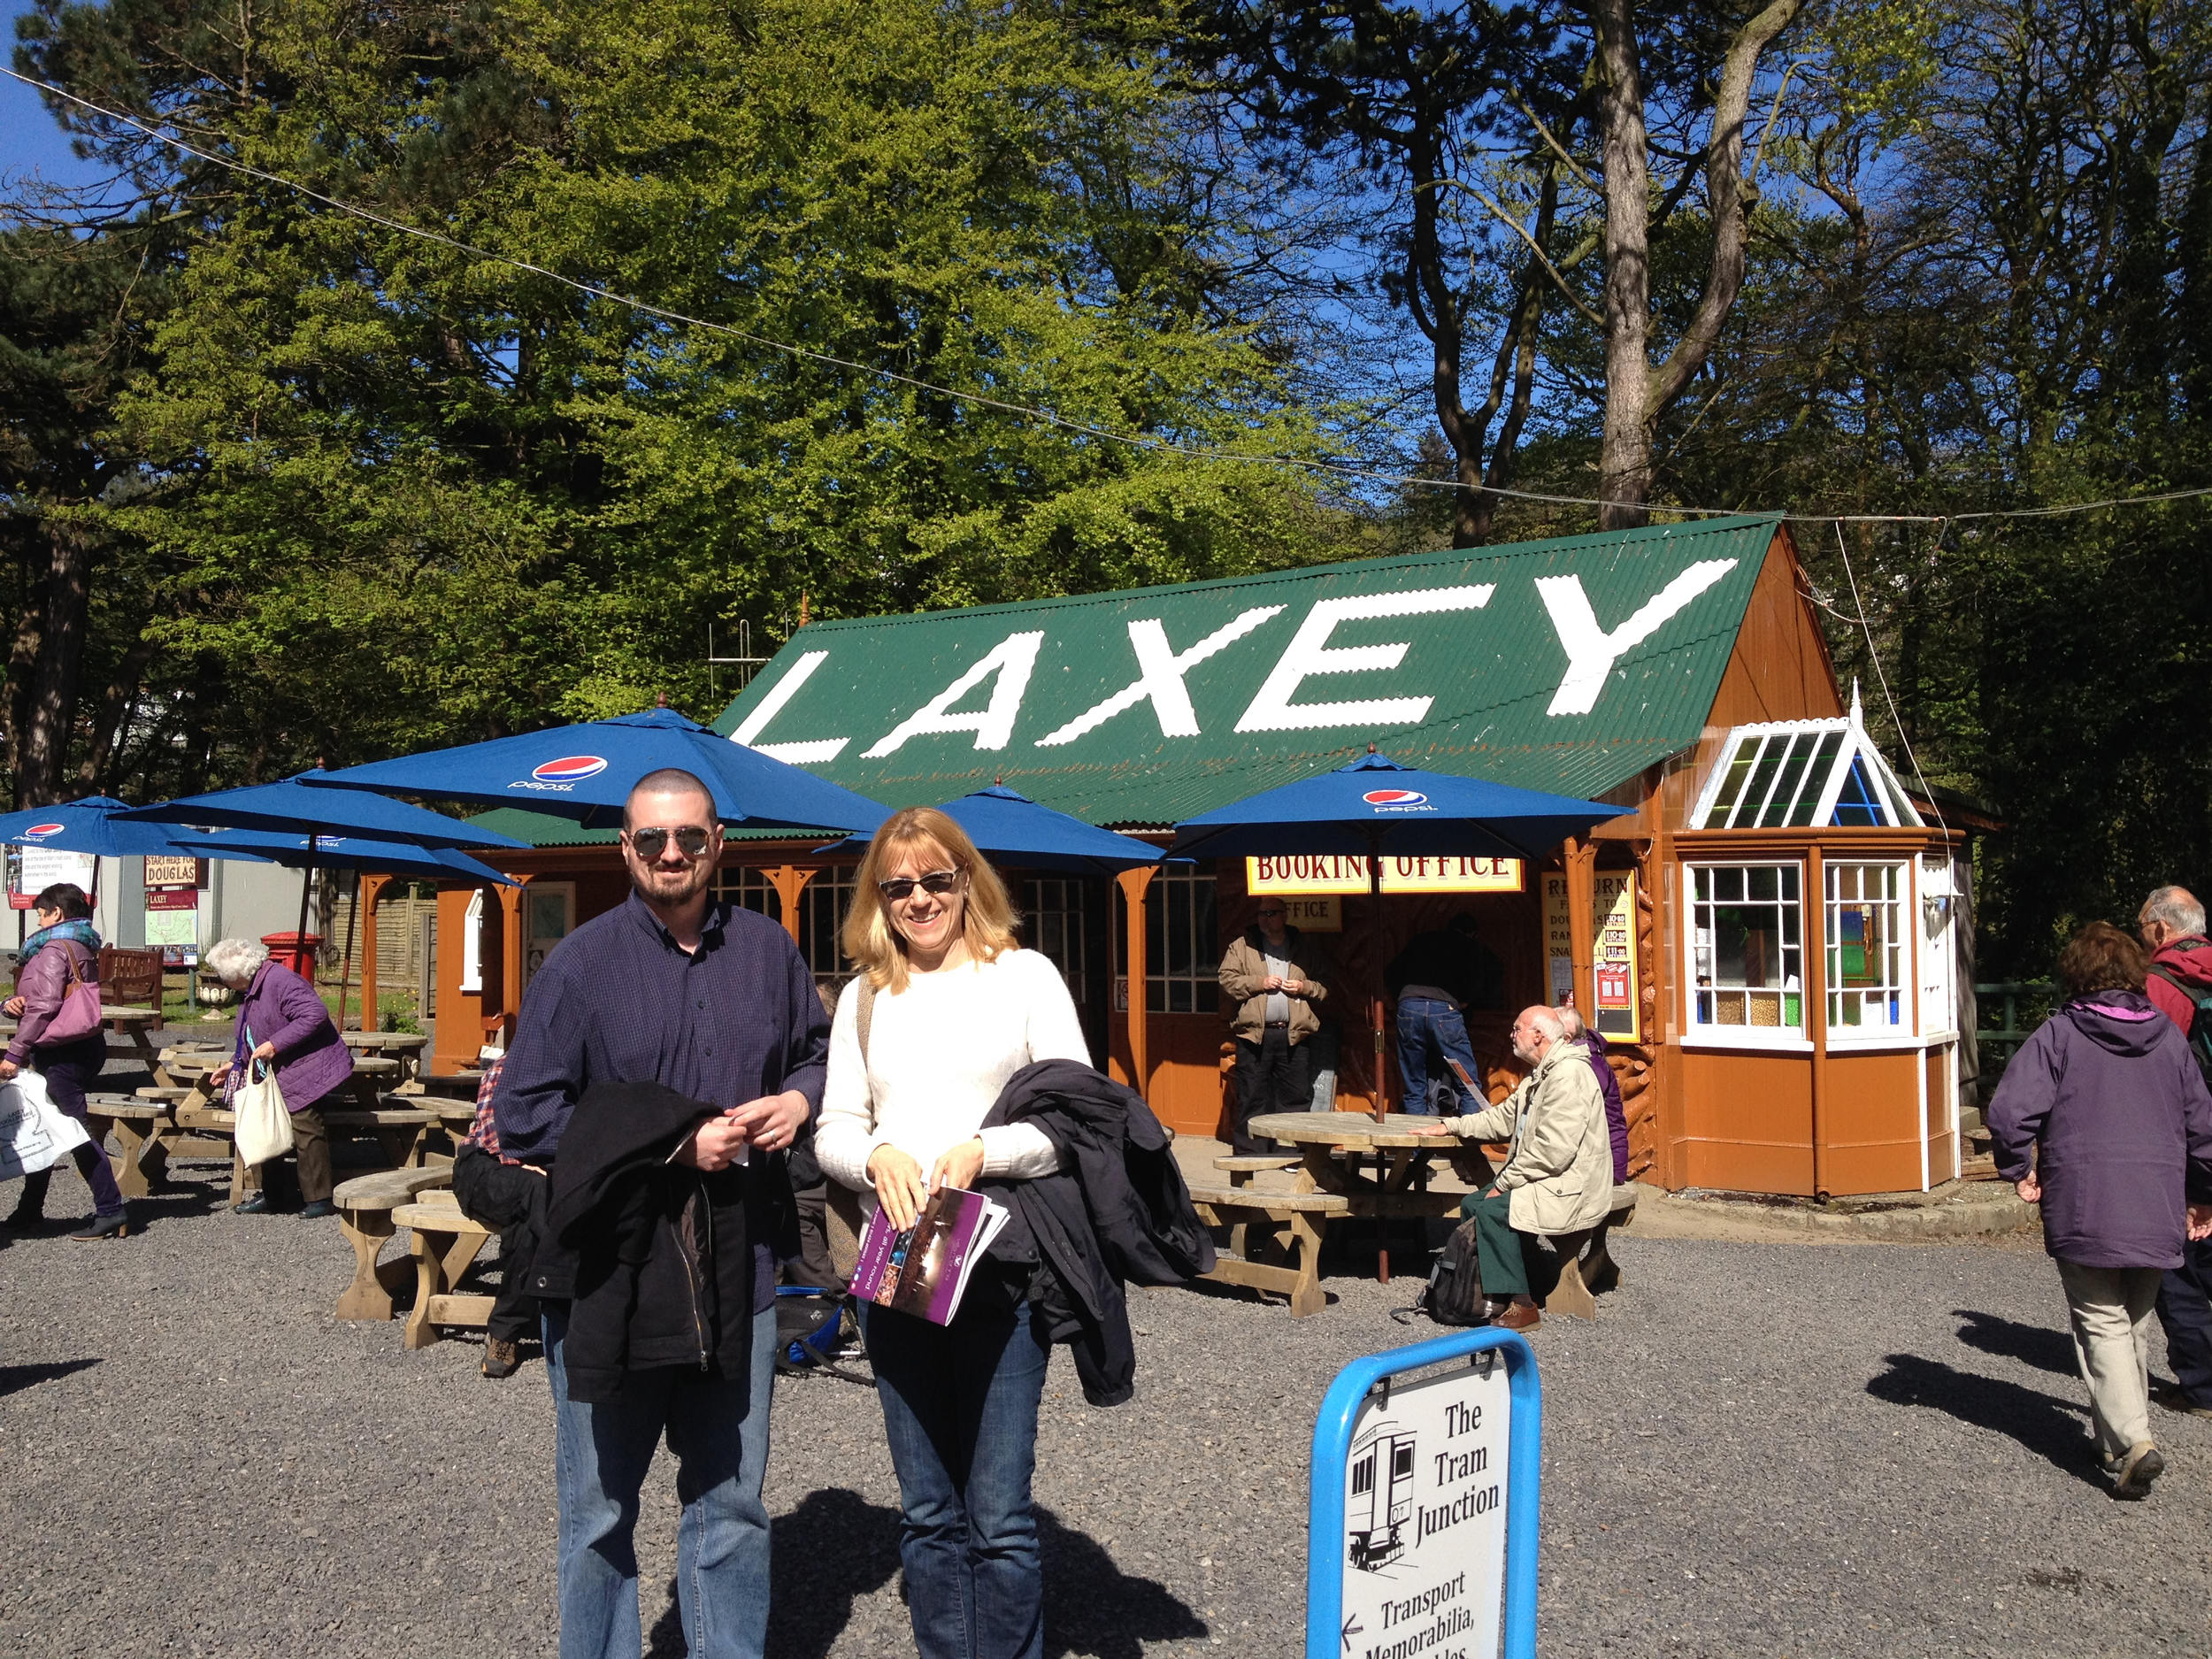 Take the last train to Laxey and I'll meet you at the station.